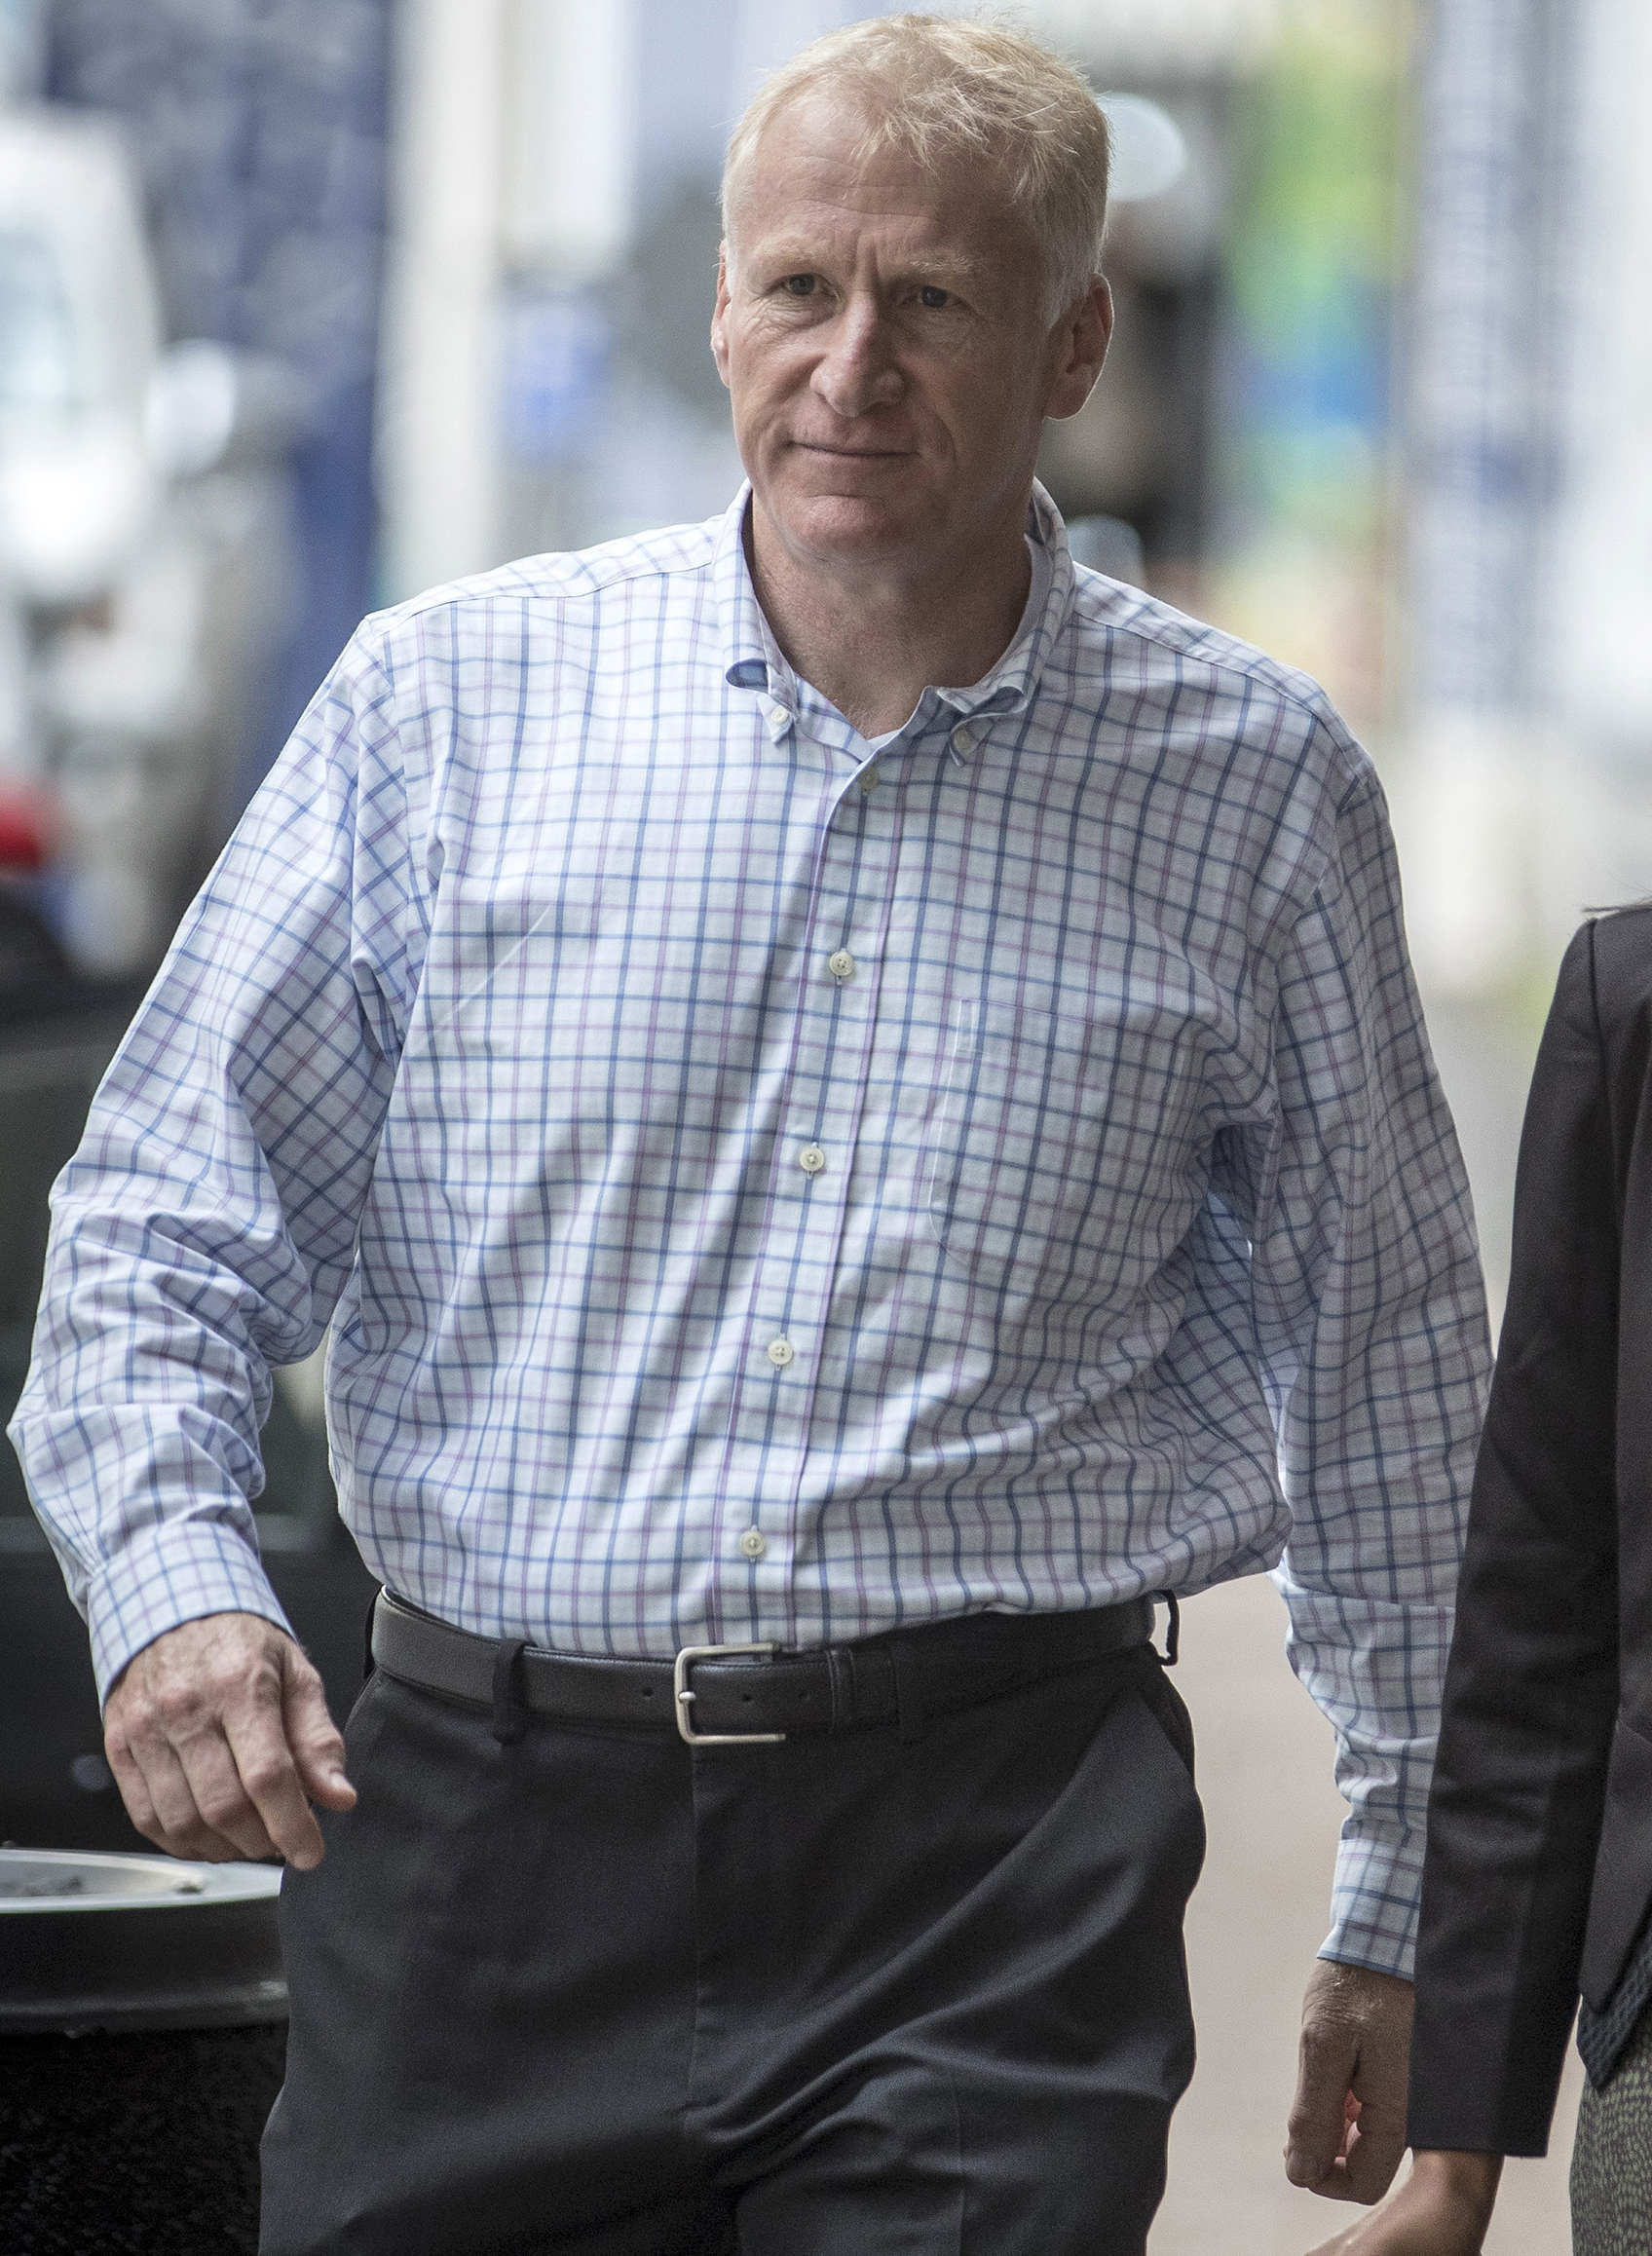 Alfred Keating, a former New Zealand Navy commodore and senior defense attache, walks towards the Auckland District Court on March 29, 2018.